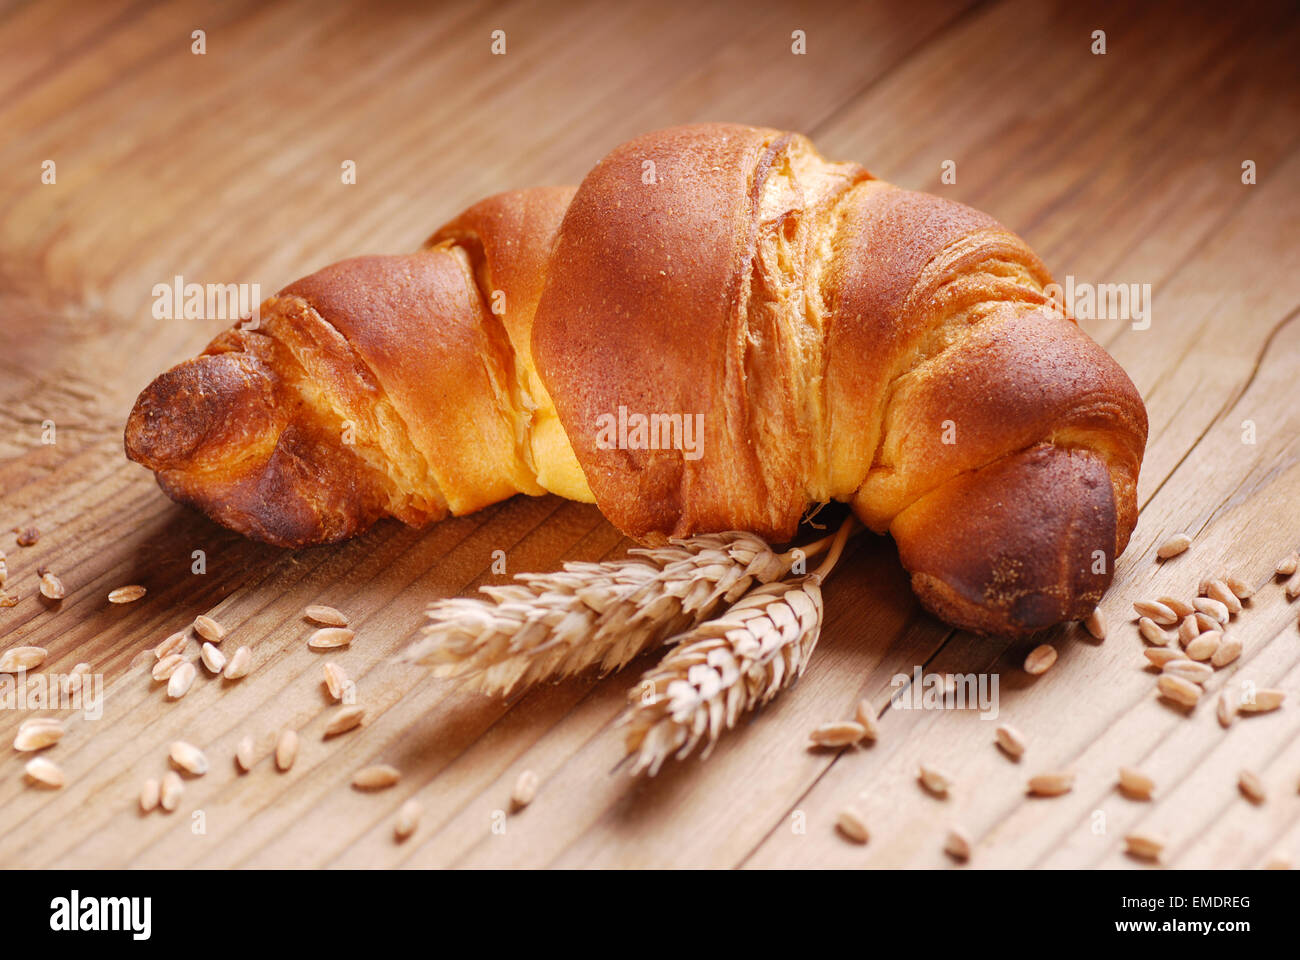 warm croissant with ears of corn on the wooden table - Stock Image